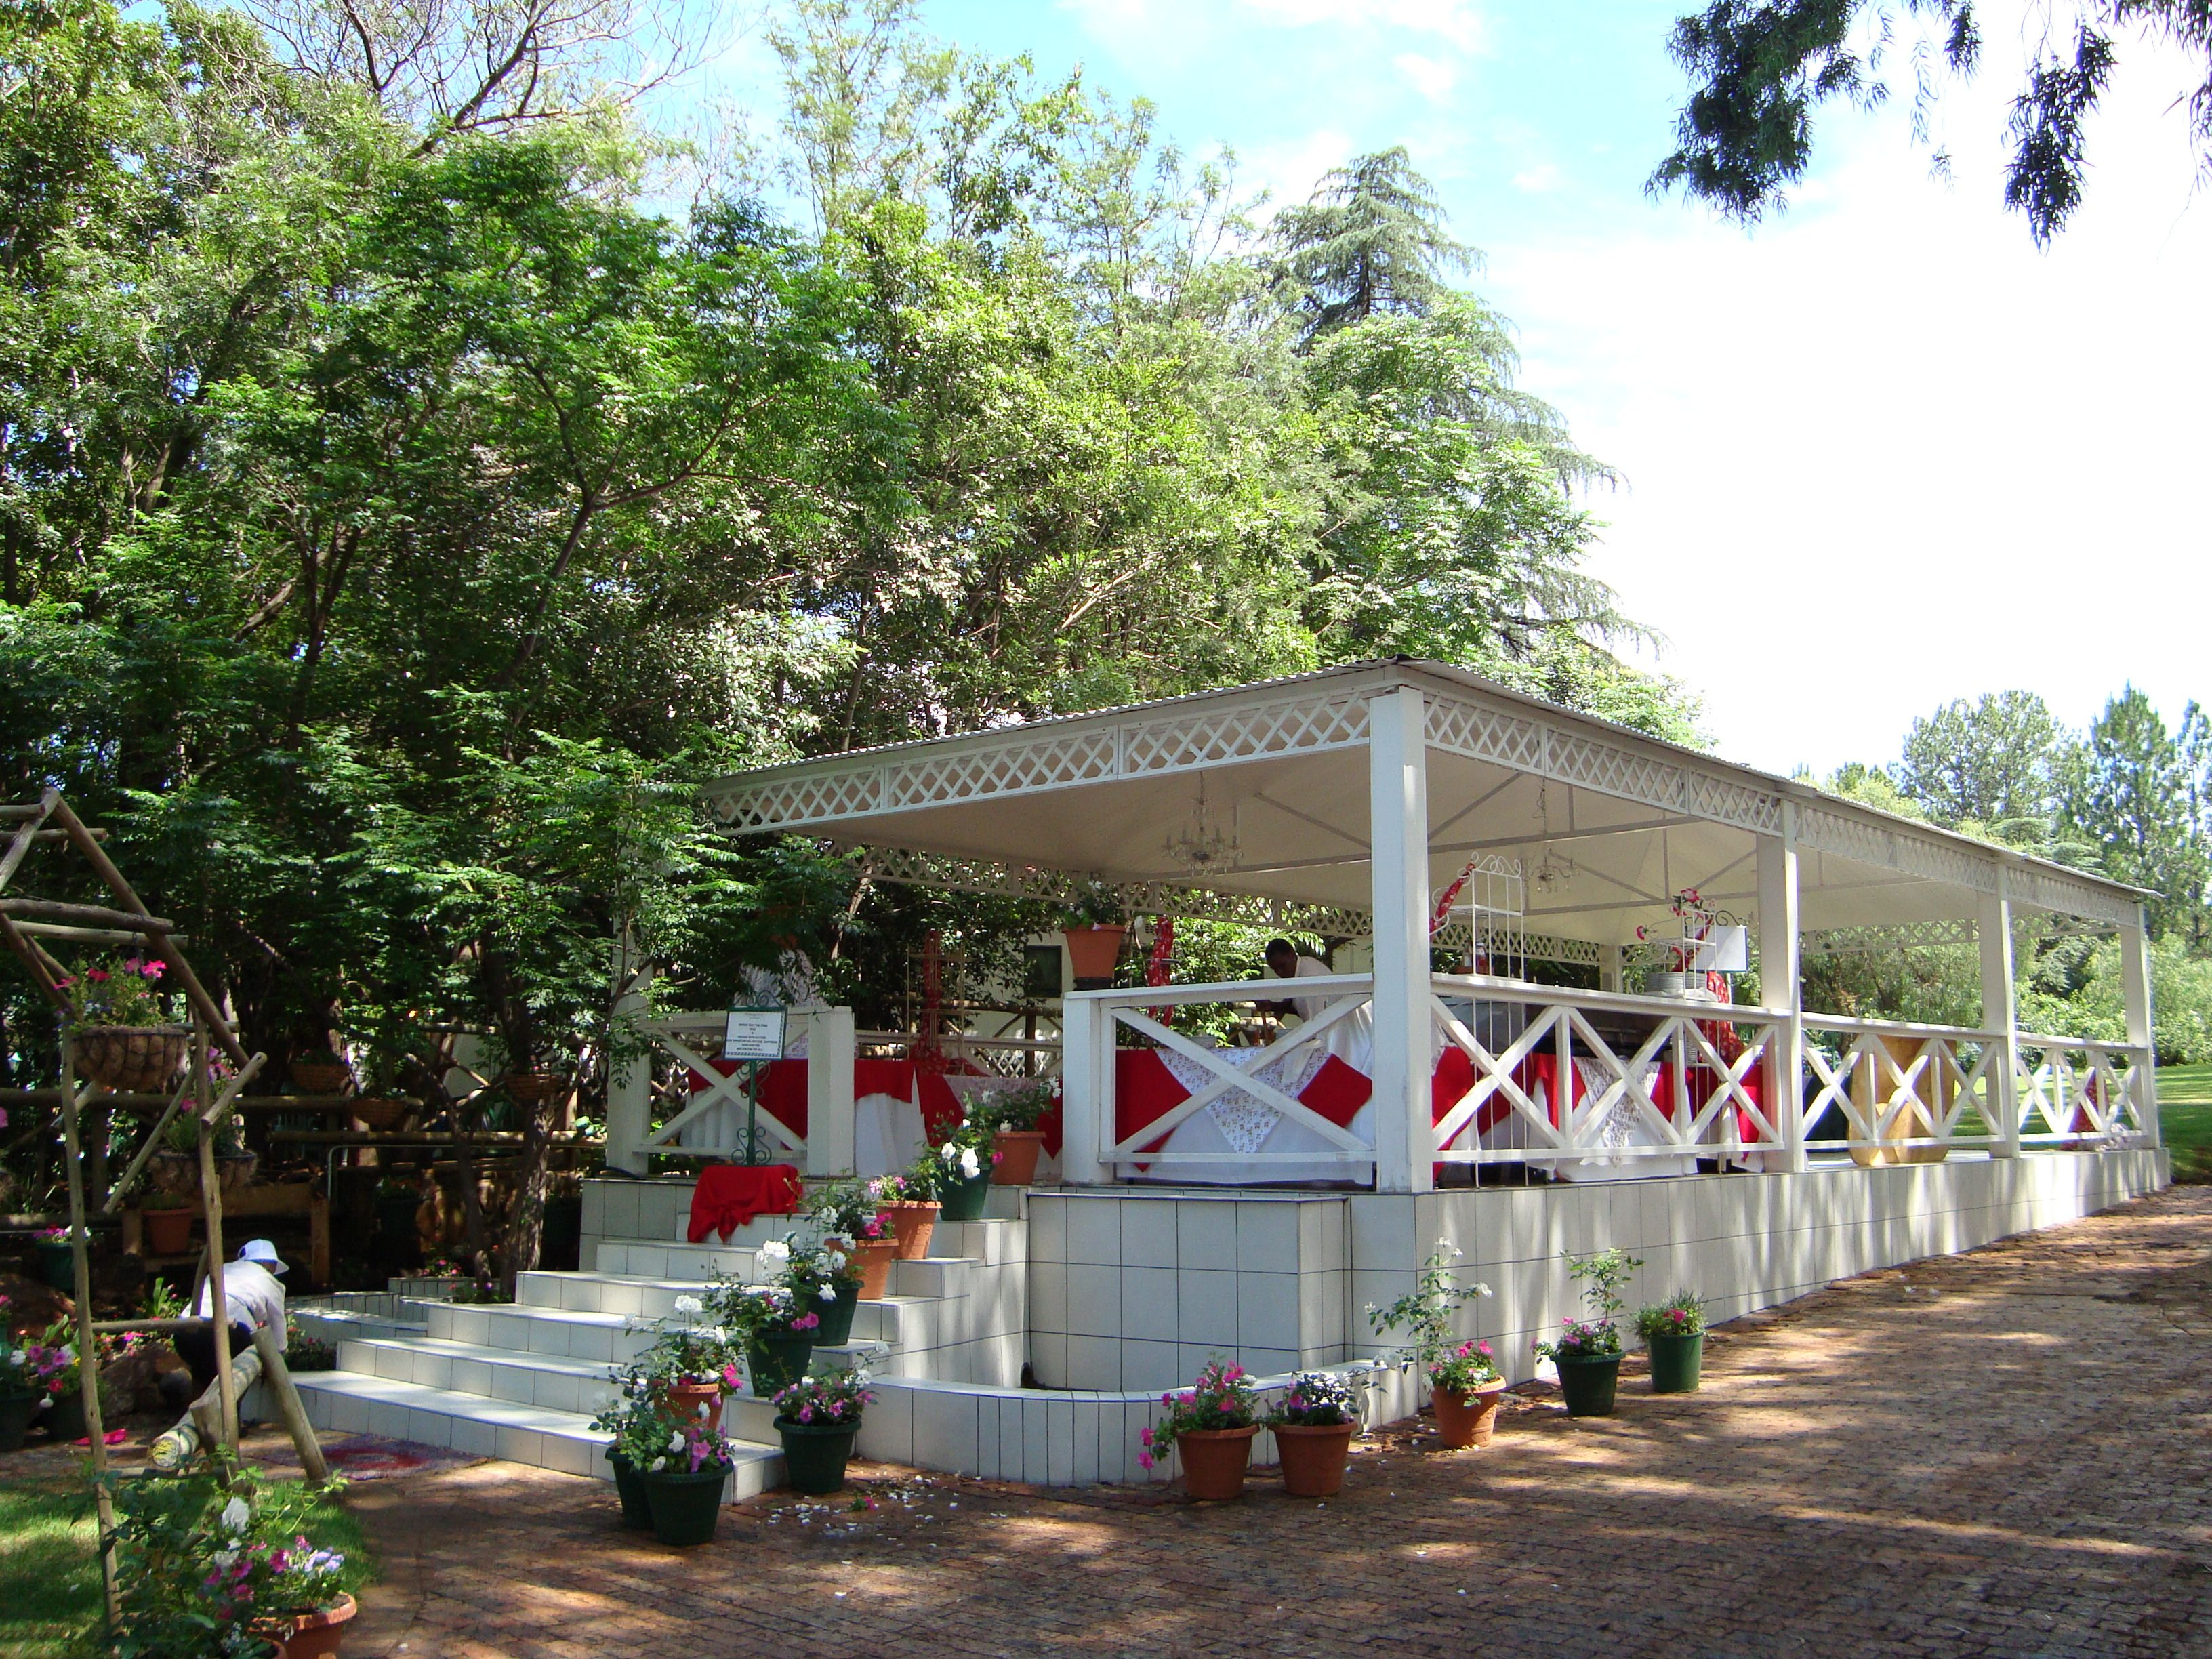 The Terraces At Stonehaven On Vaal Ideal Function Wedding Party Business Functions Venue On The Banks Of The Vaal River Outdoor Structures Outdoor Venues